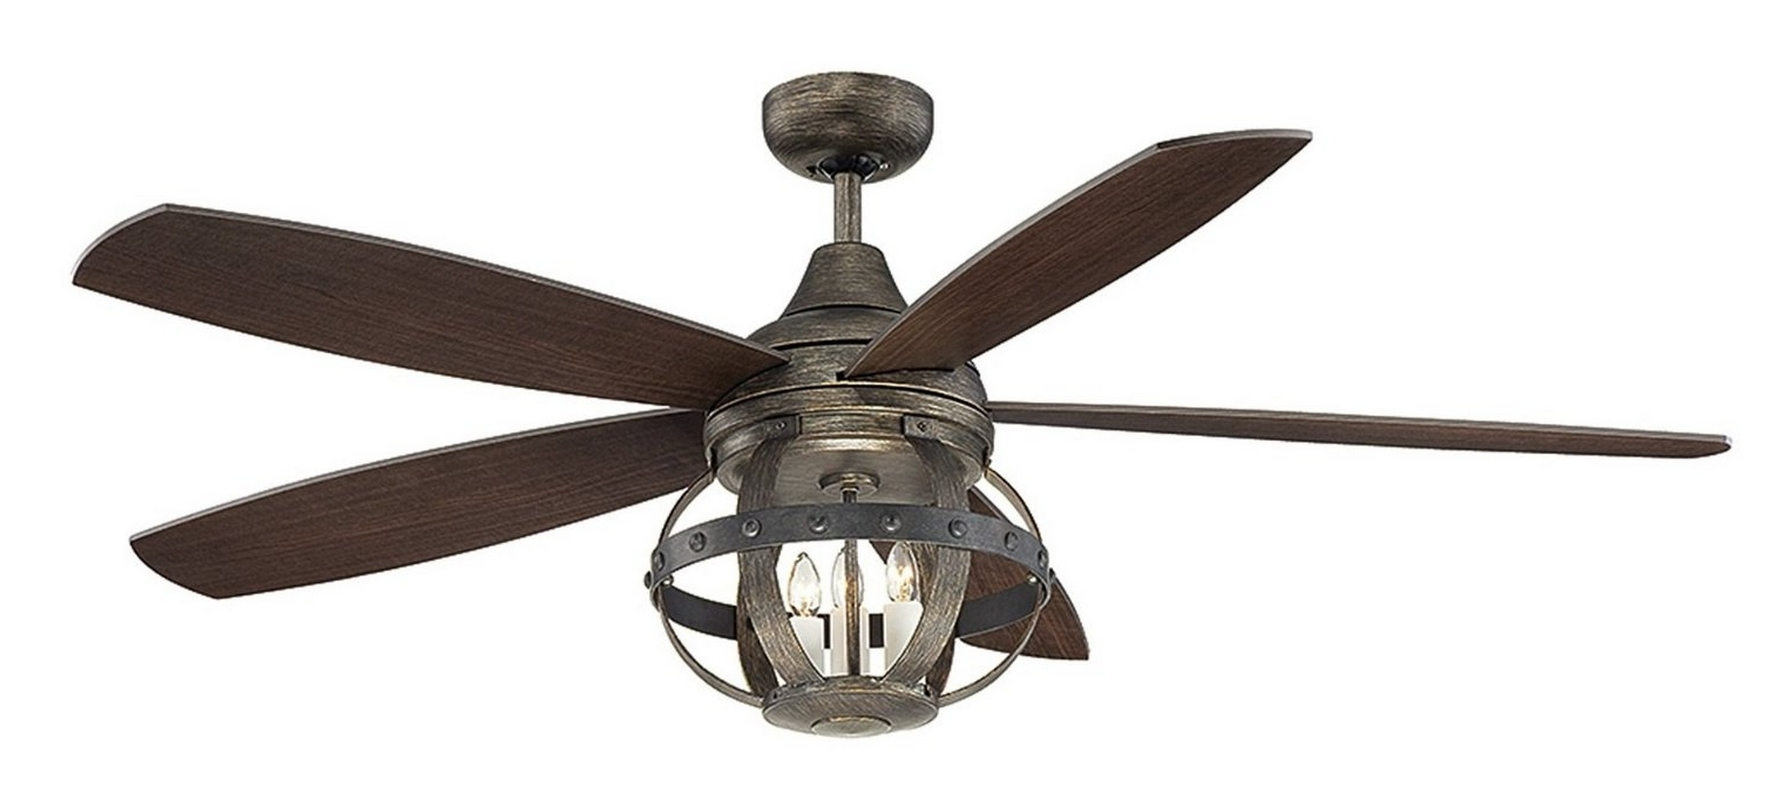 2019 Industrial Outdoor Ceiling Fan With Light Industrial Outdoor Ceiling In Industrial Outdoor Ceiling Fans With Light (Gallery 2 of 20)